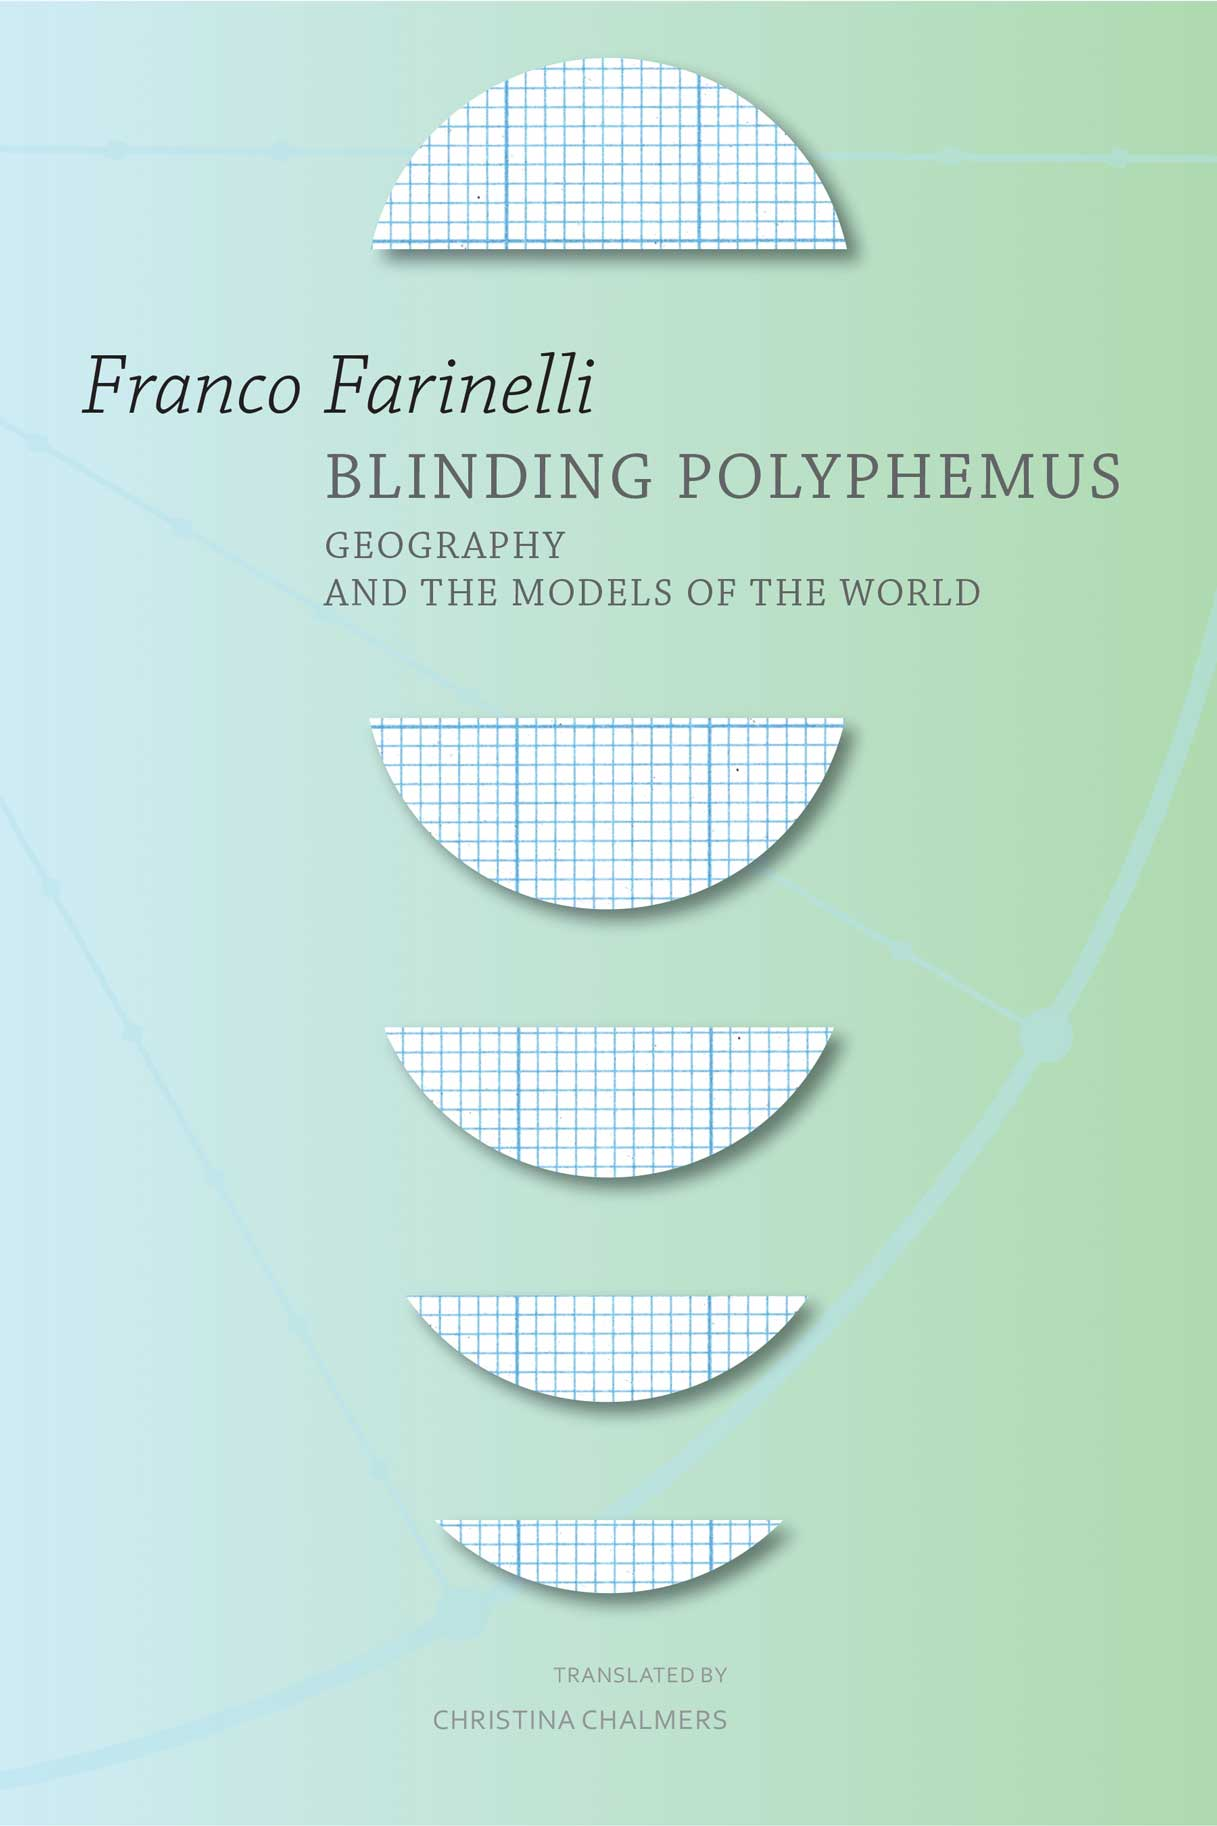 Blinding Polyphemus : Geography and the Models of the World by  Franco Farinelli   |  Seagull Books